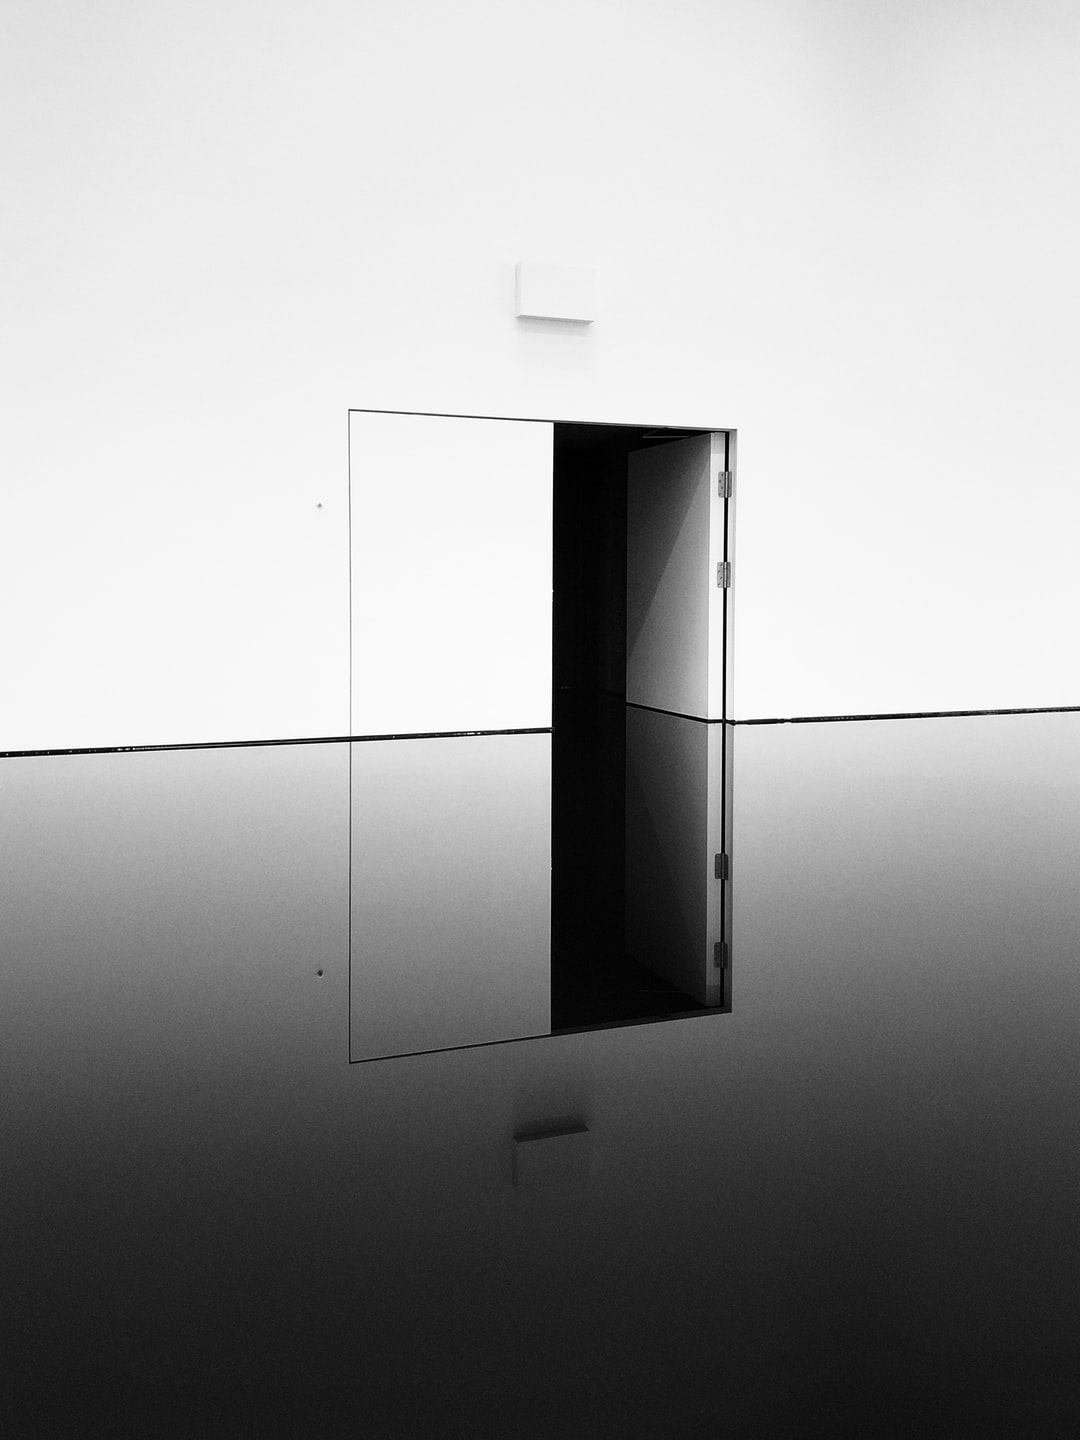 I took this photo when I visited Richard Wilson's 20:50 at The Hayward Gallery in London. The still, deep black engine oil contrasts the surrounding gallery wall, and I liked how the door's full height is recreated by its own reflection.